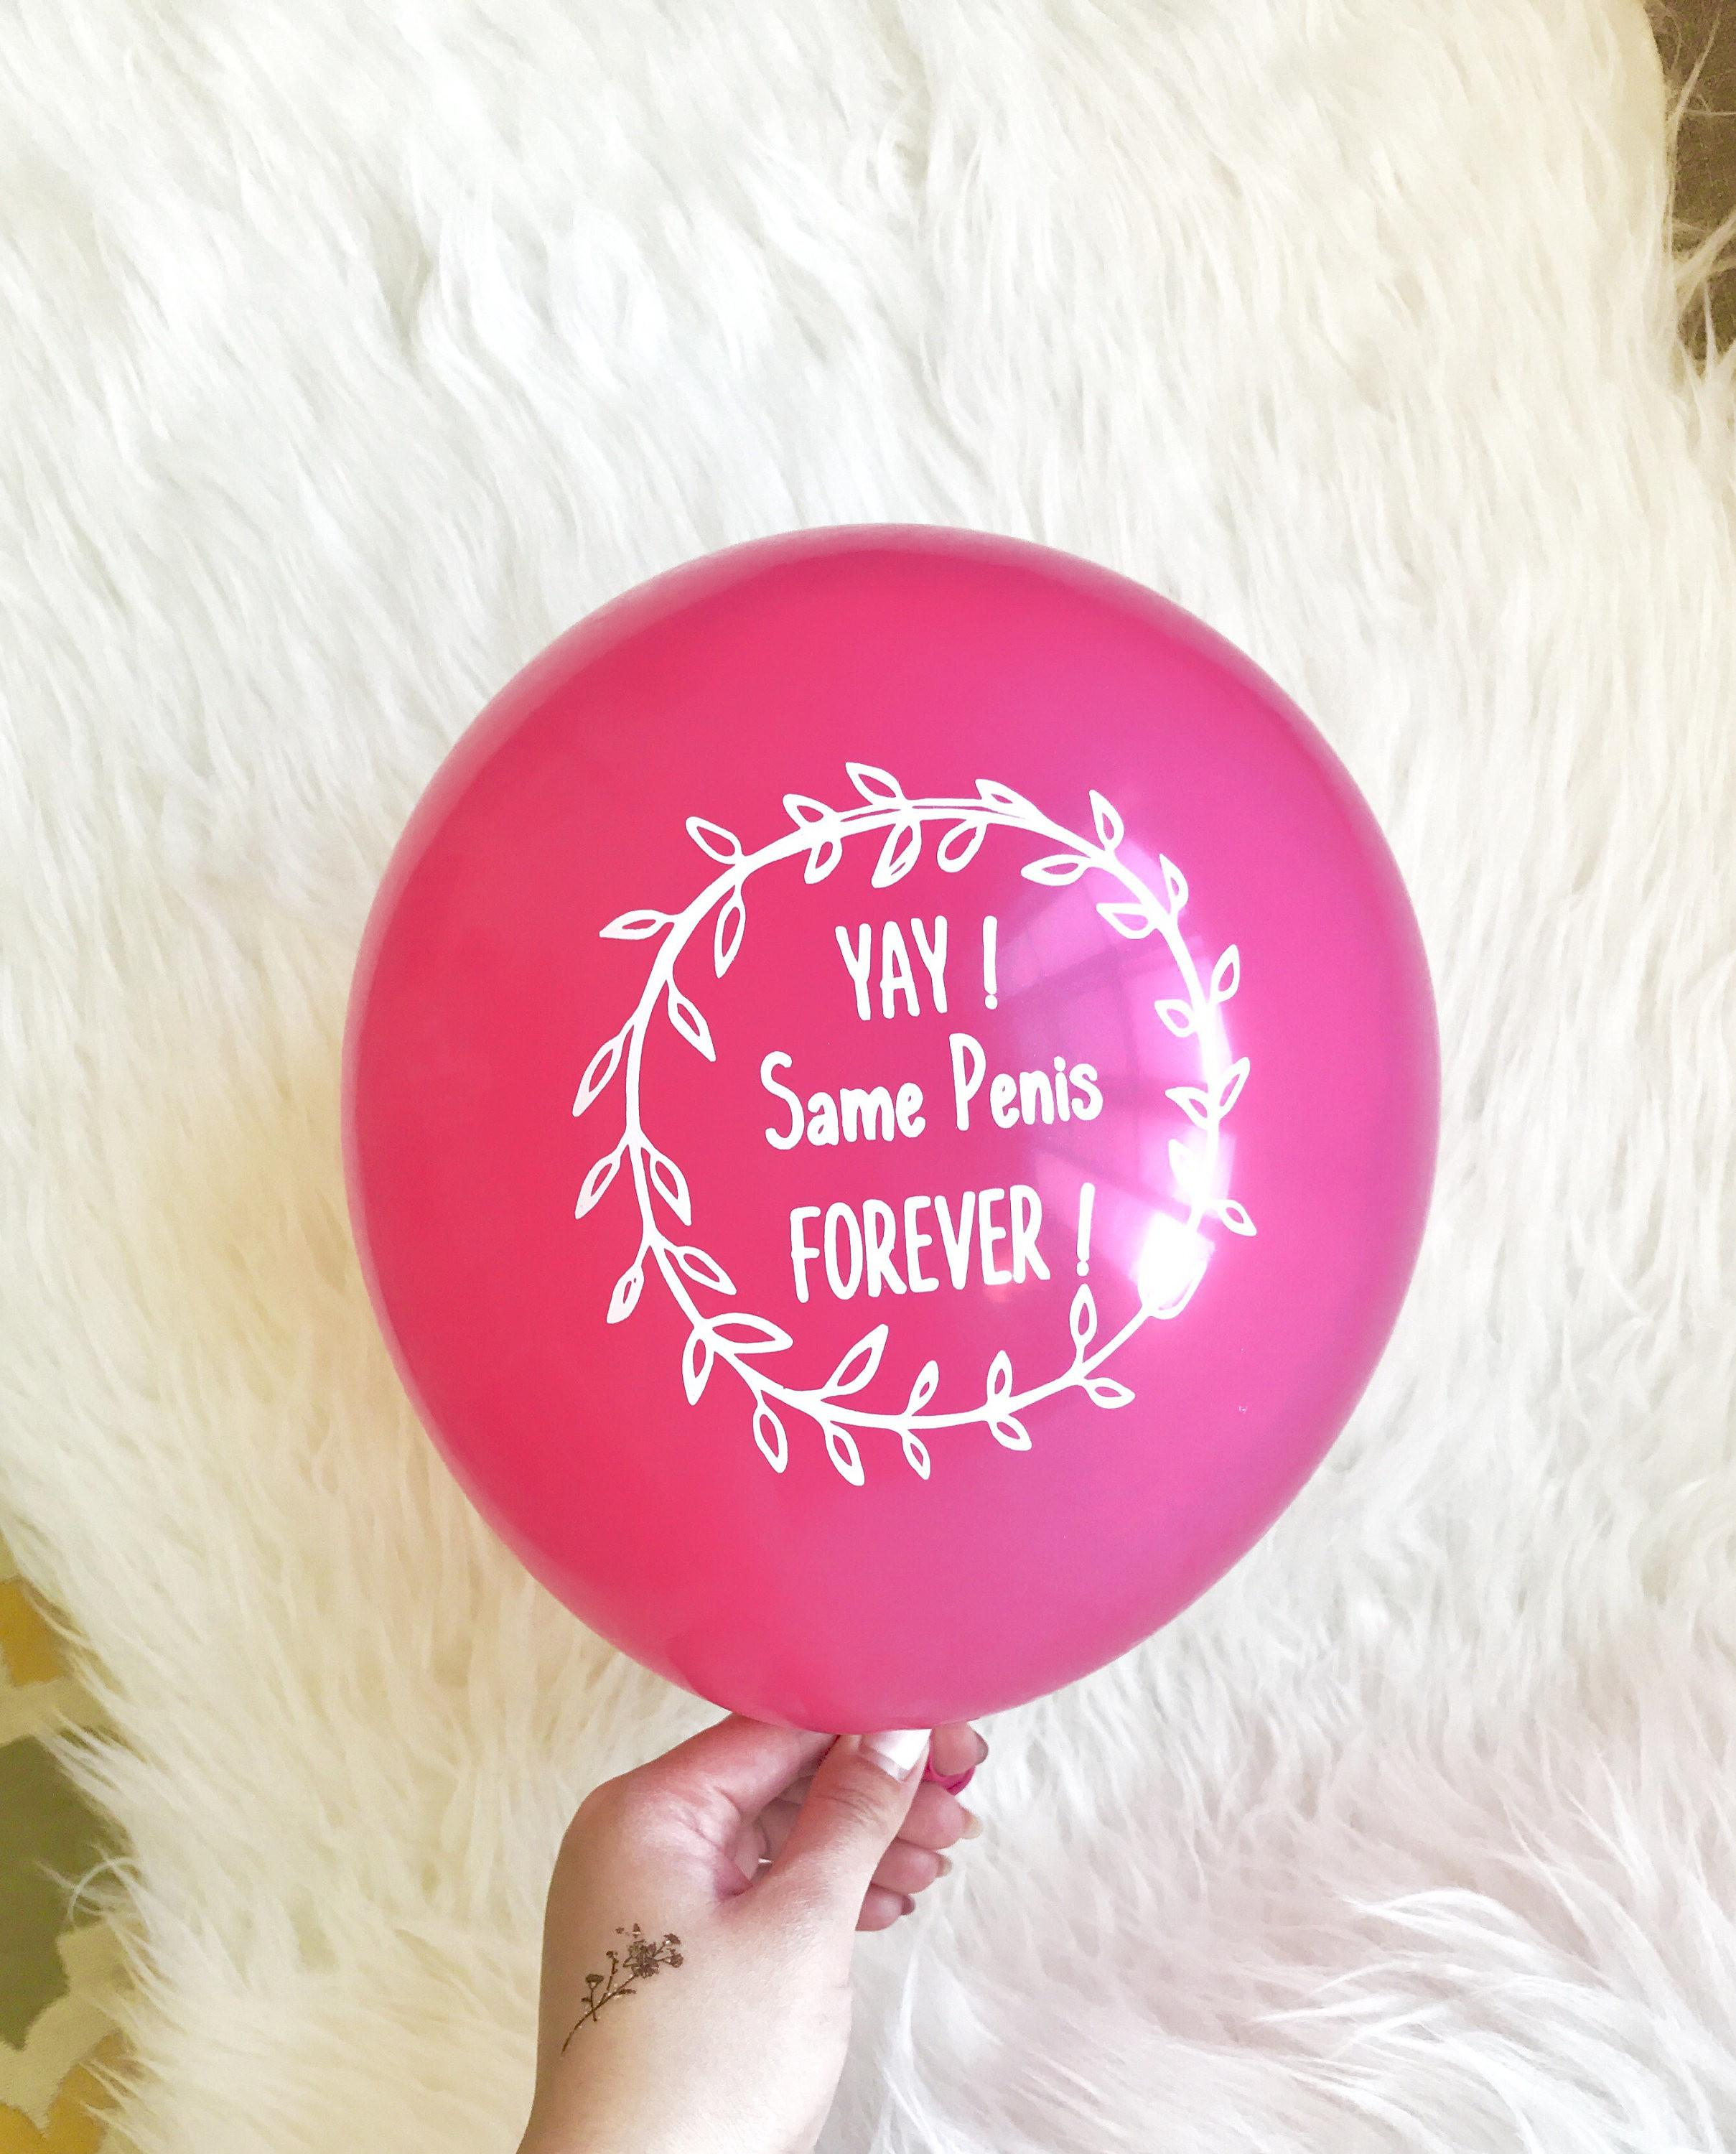 Same Penis Forever Decorations Balloon Set Hot Pink